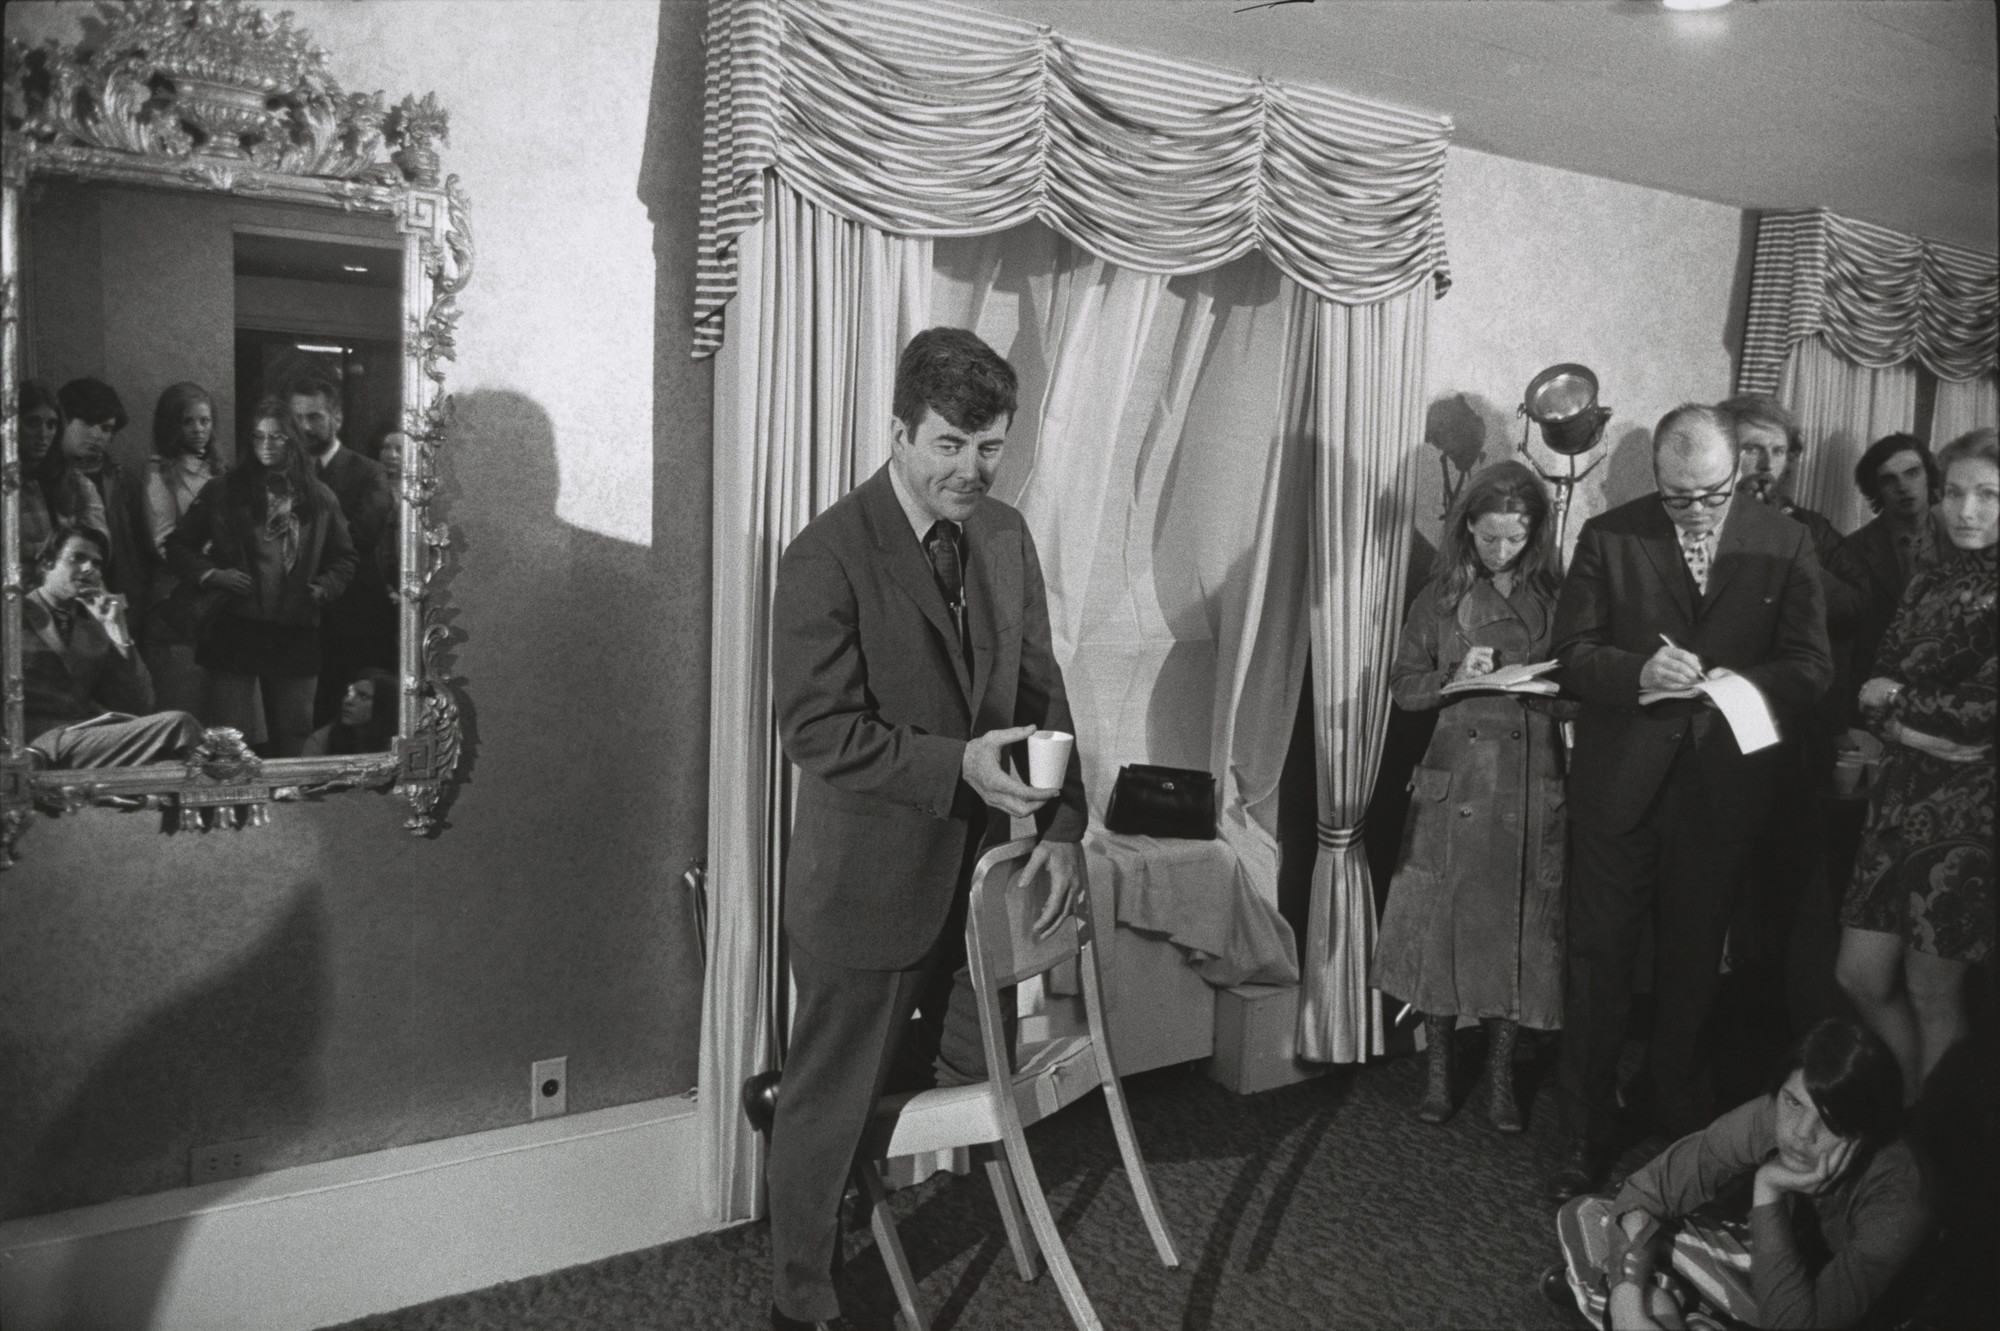 Garry Winogrand. Presidential Candidates Press Conference, Providence, Rhode Island. 1971